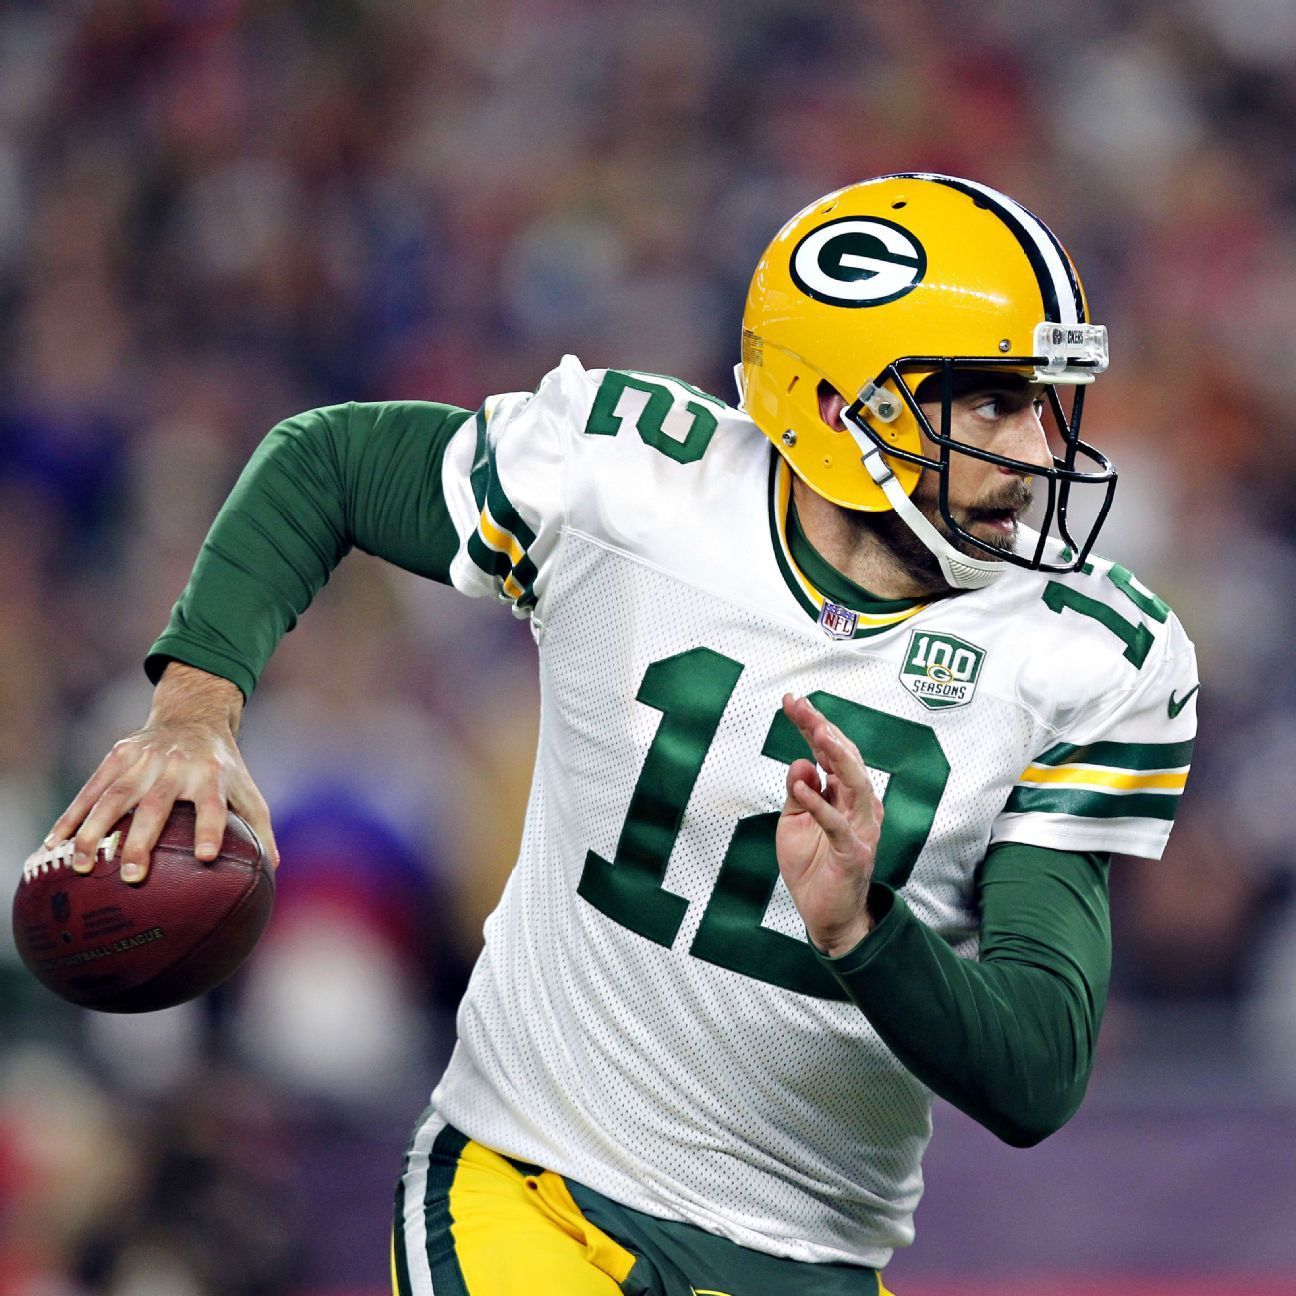 Aaron Rodgers Has Finger On Way Into Playoffs Win And Get A Little Help Green Bay Packers Aaron Rodgers Victims California Wildfires